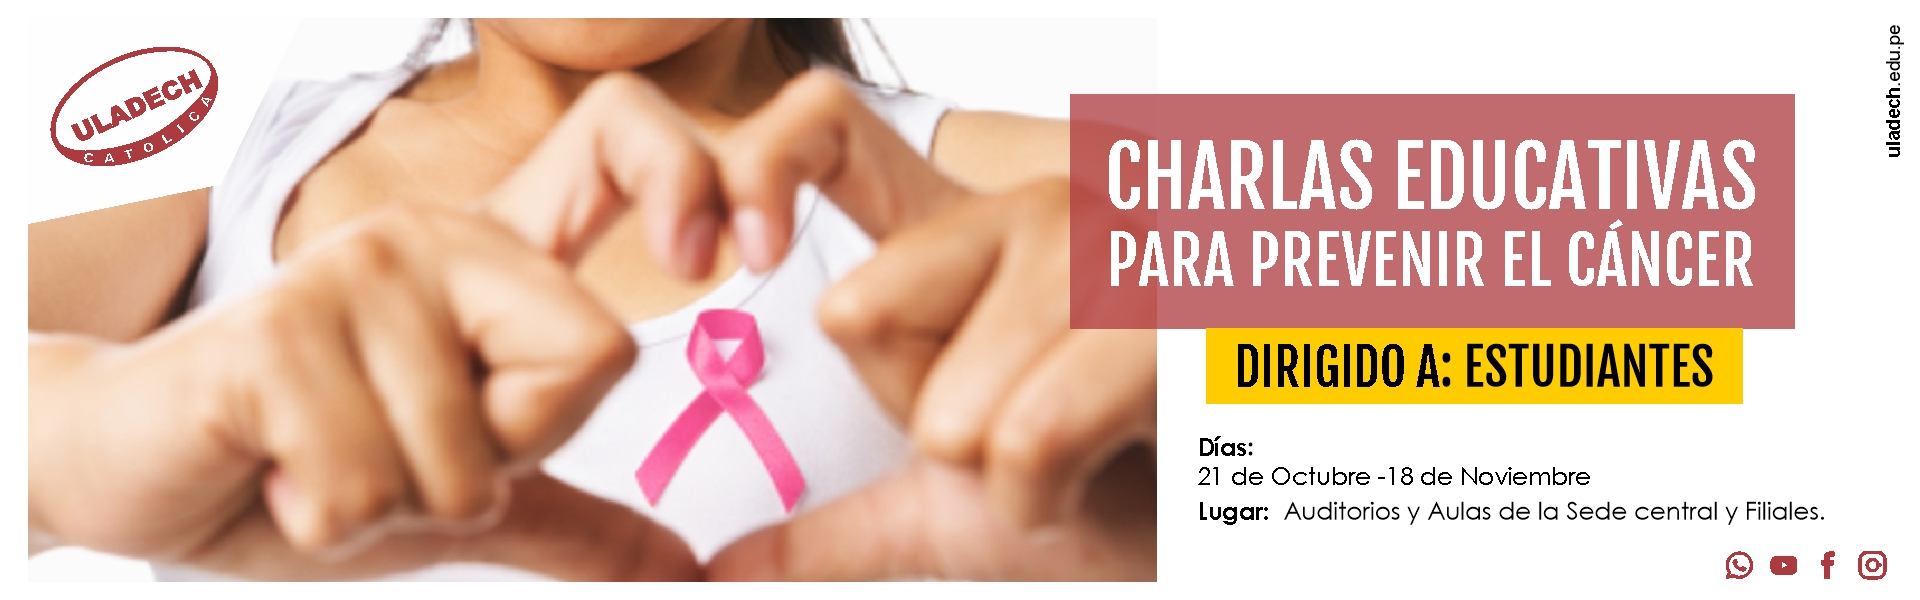 banner agenda charlas prevencion cancer